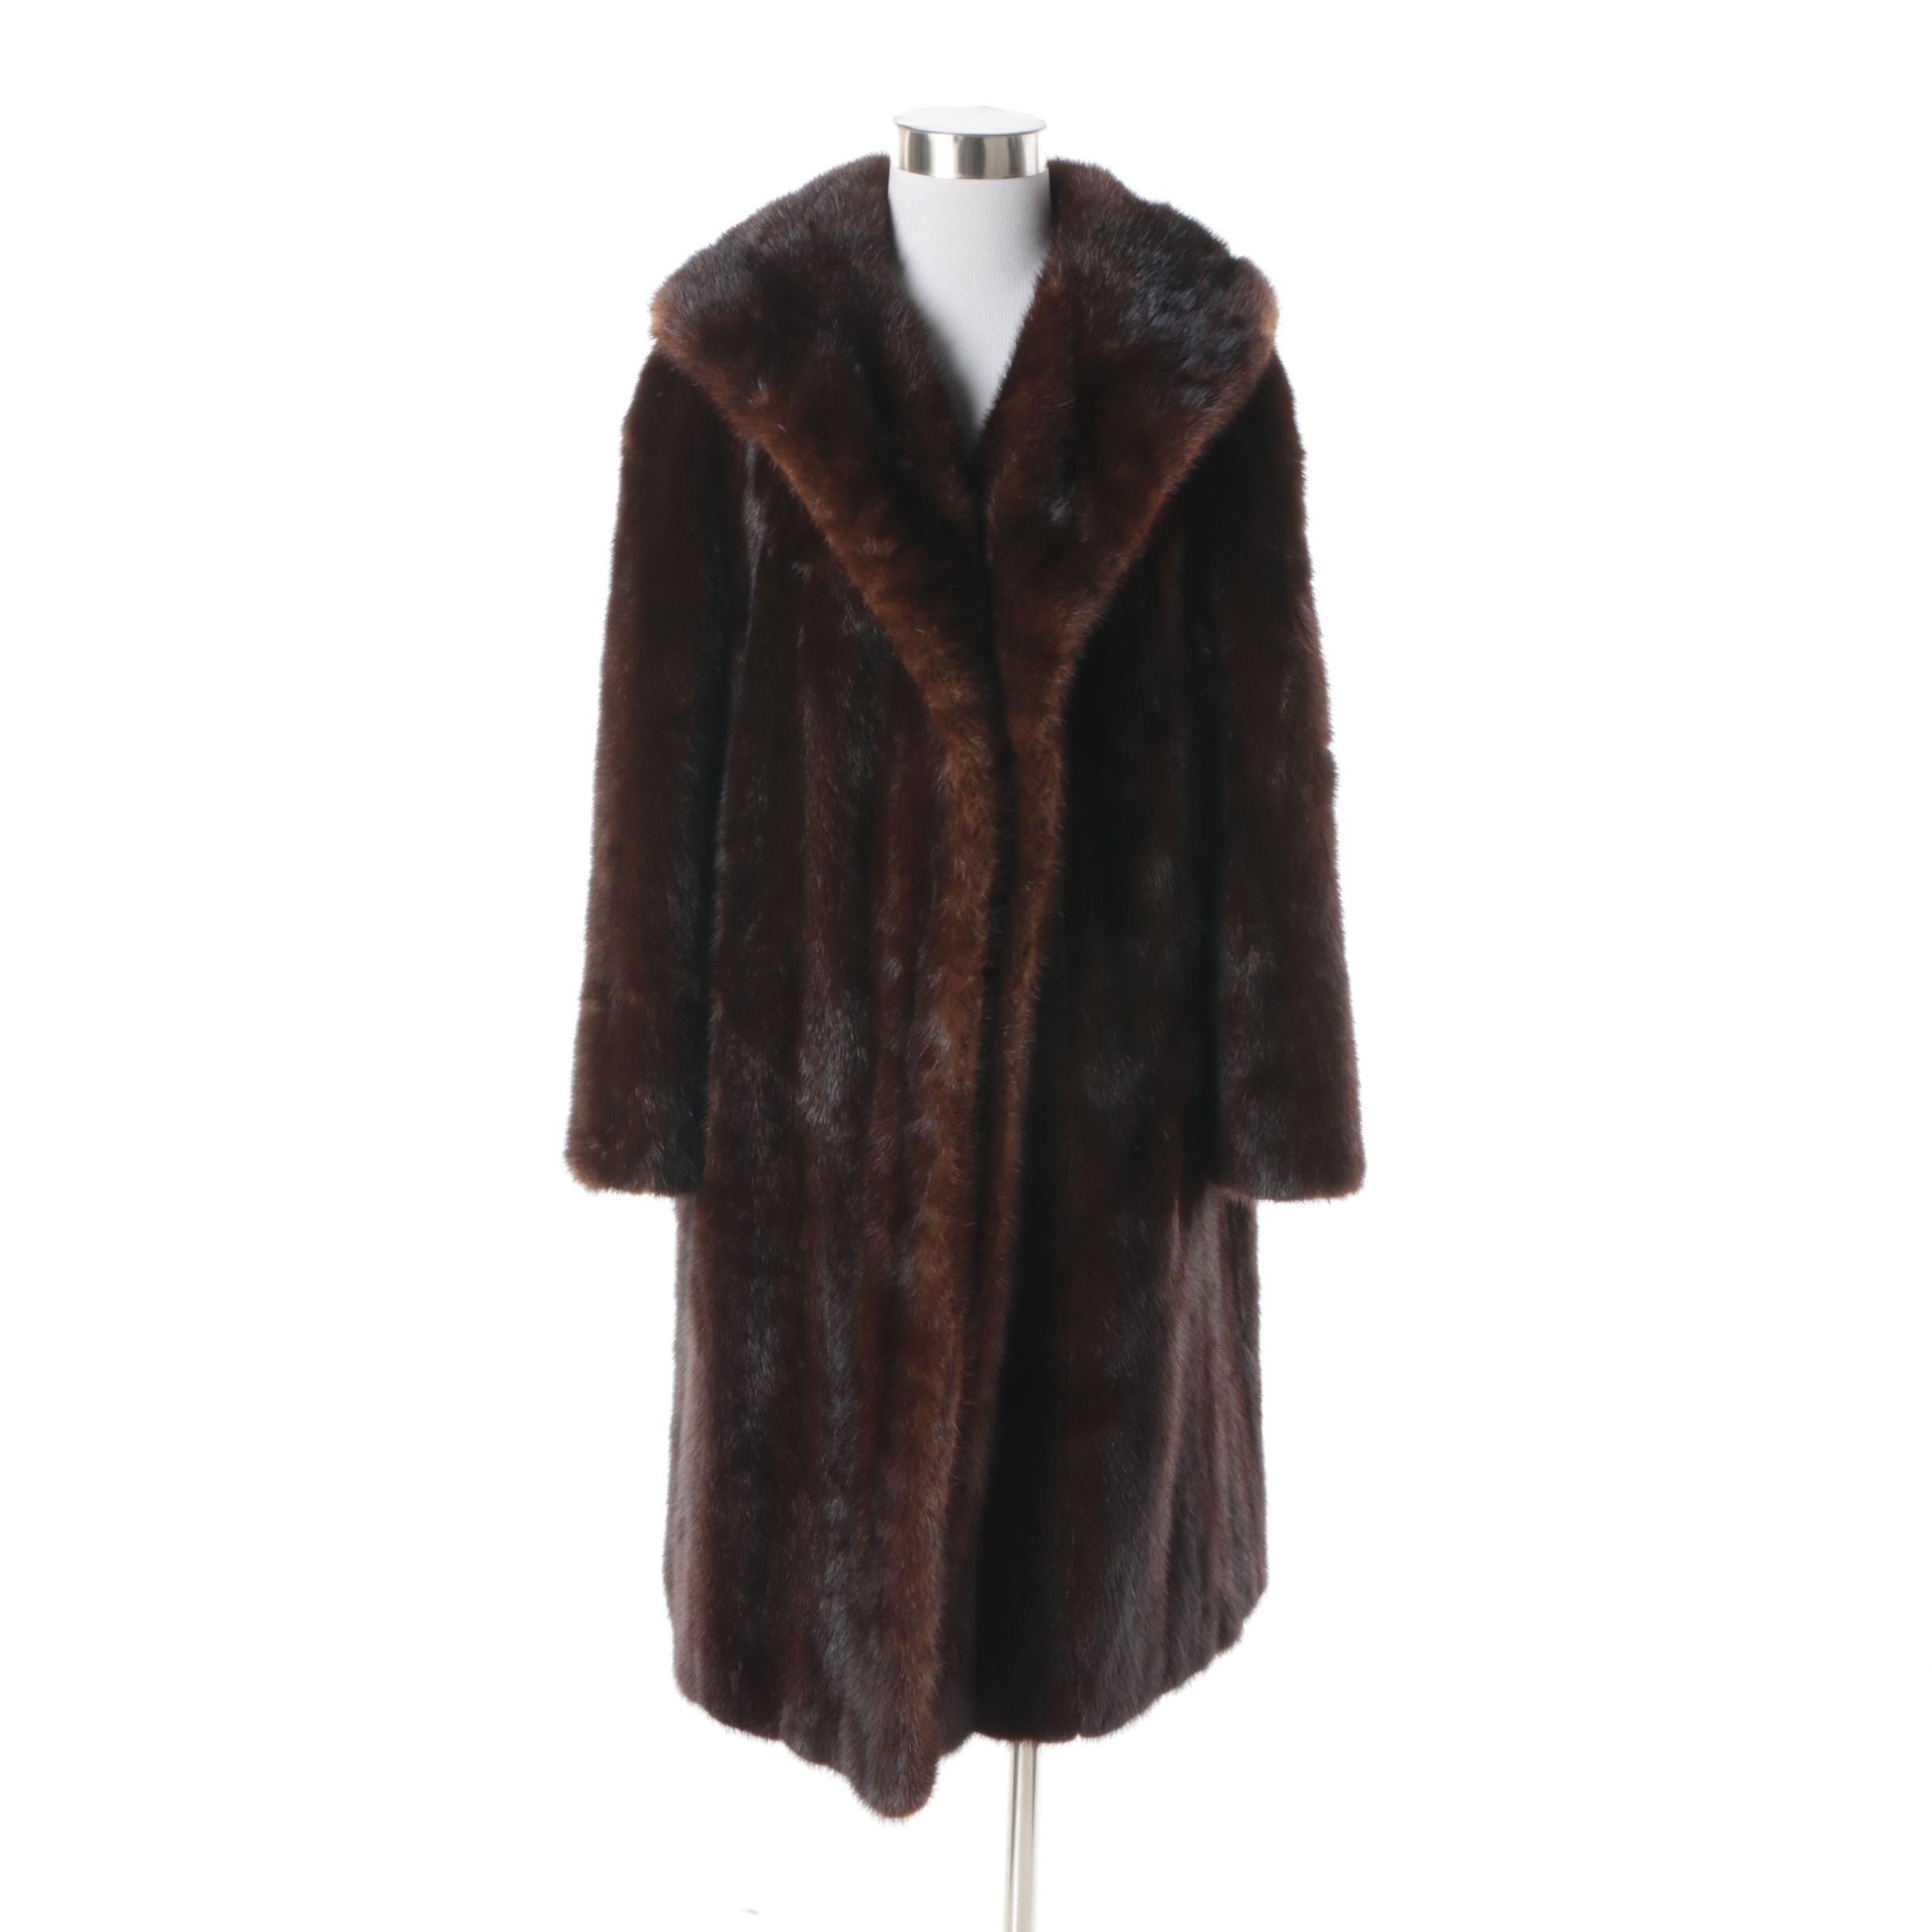 Women's Circa 1960s Vintage Dark Mahogany Brown Mink Fur Coat